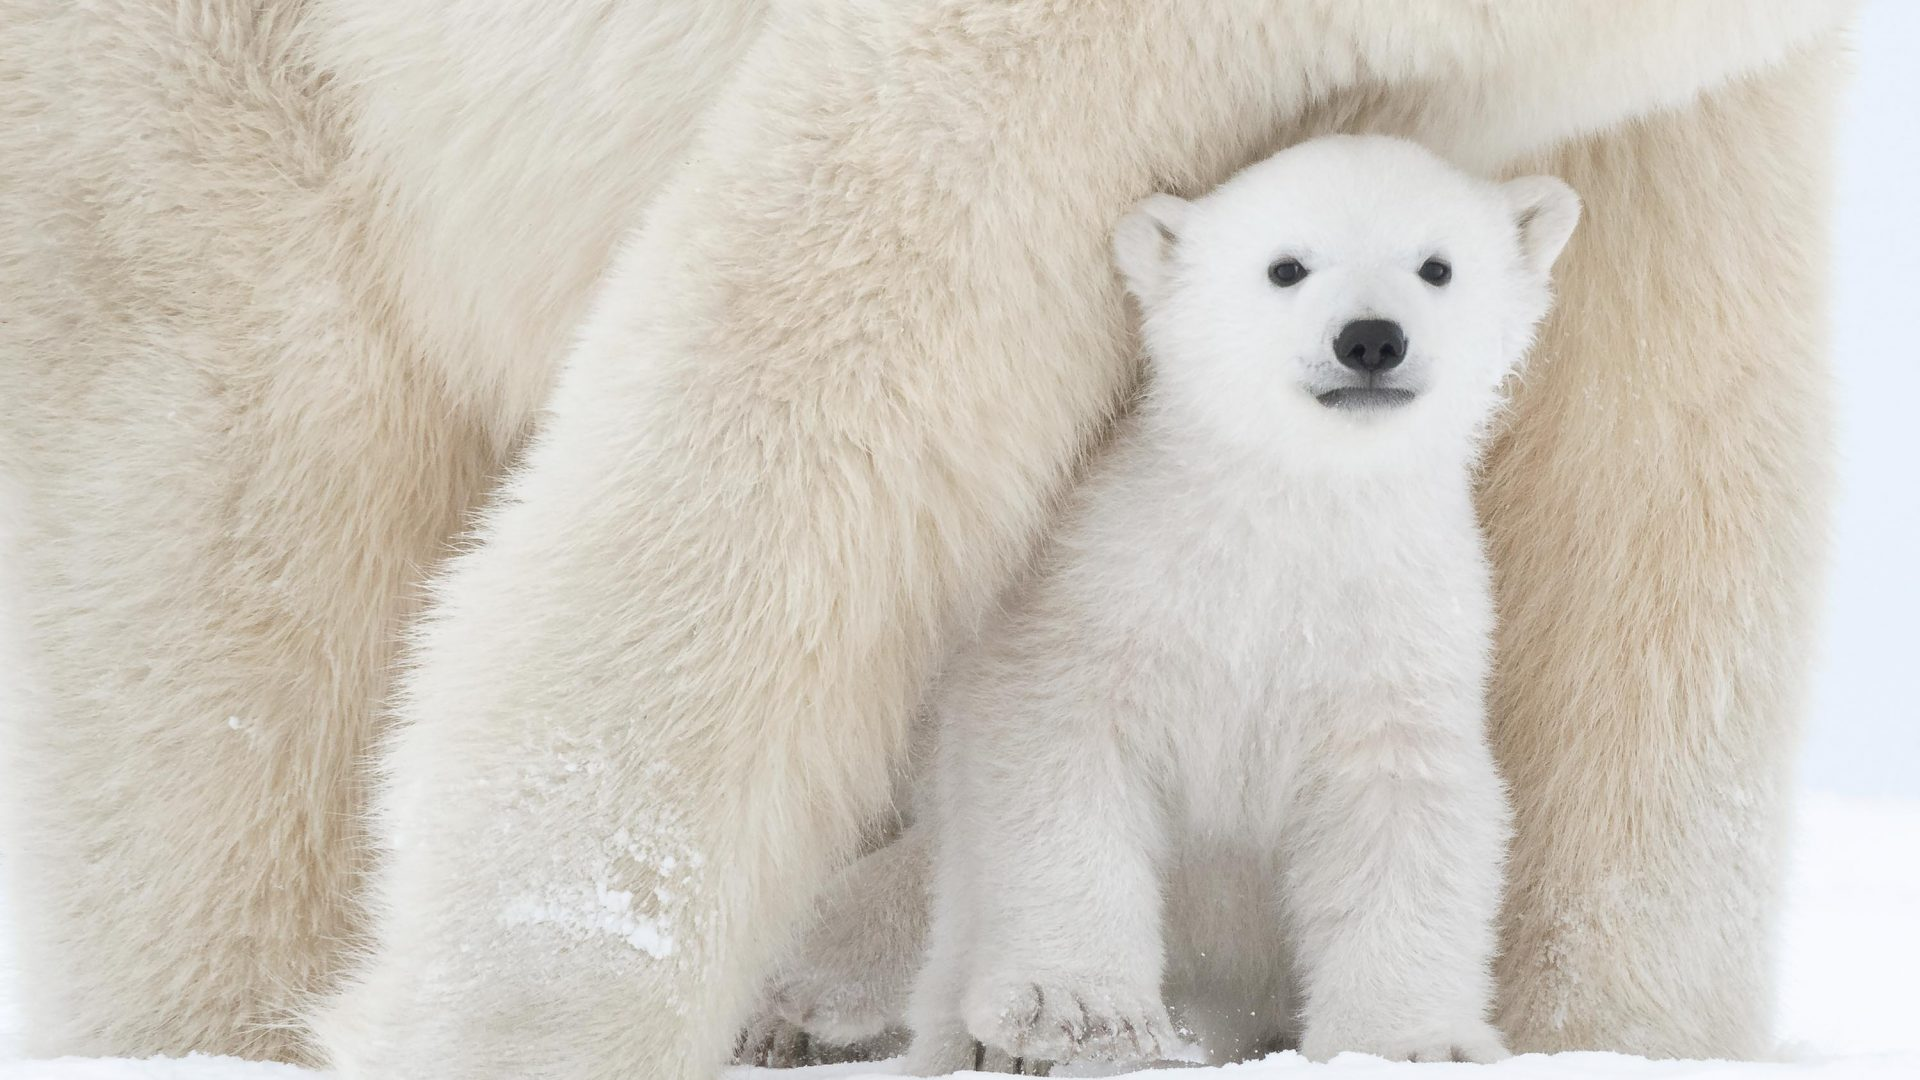 Habitat loss, climate change and pollution are all factors affecting polar bear populations.